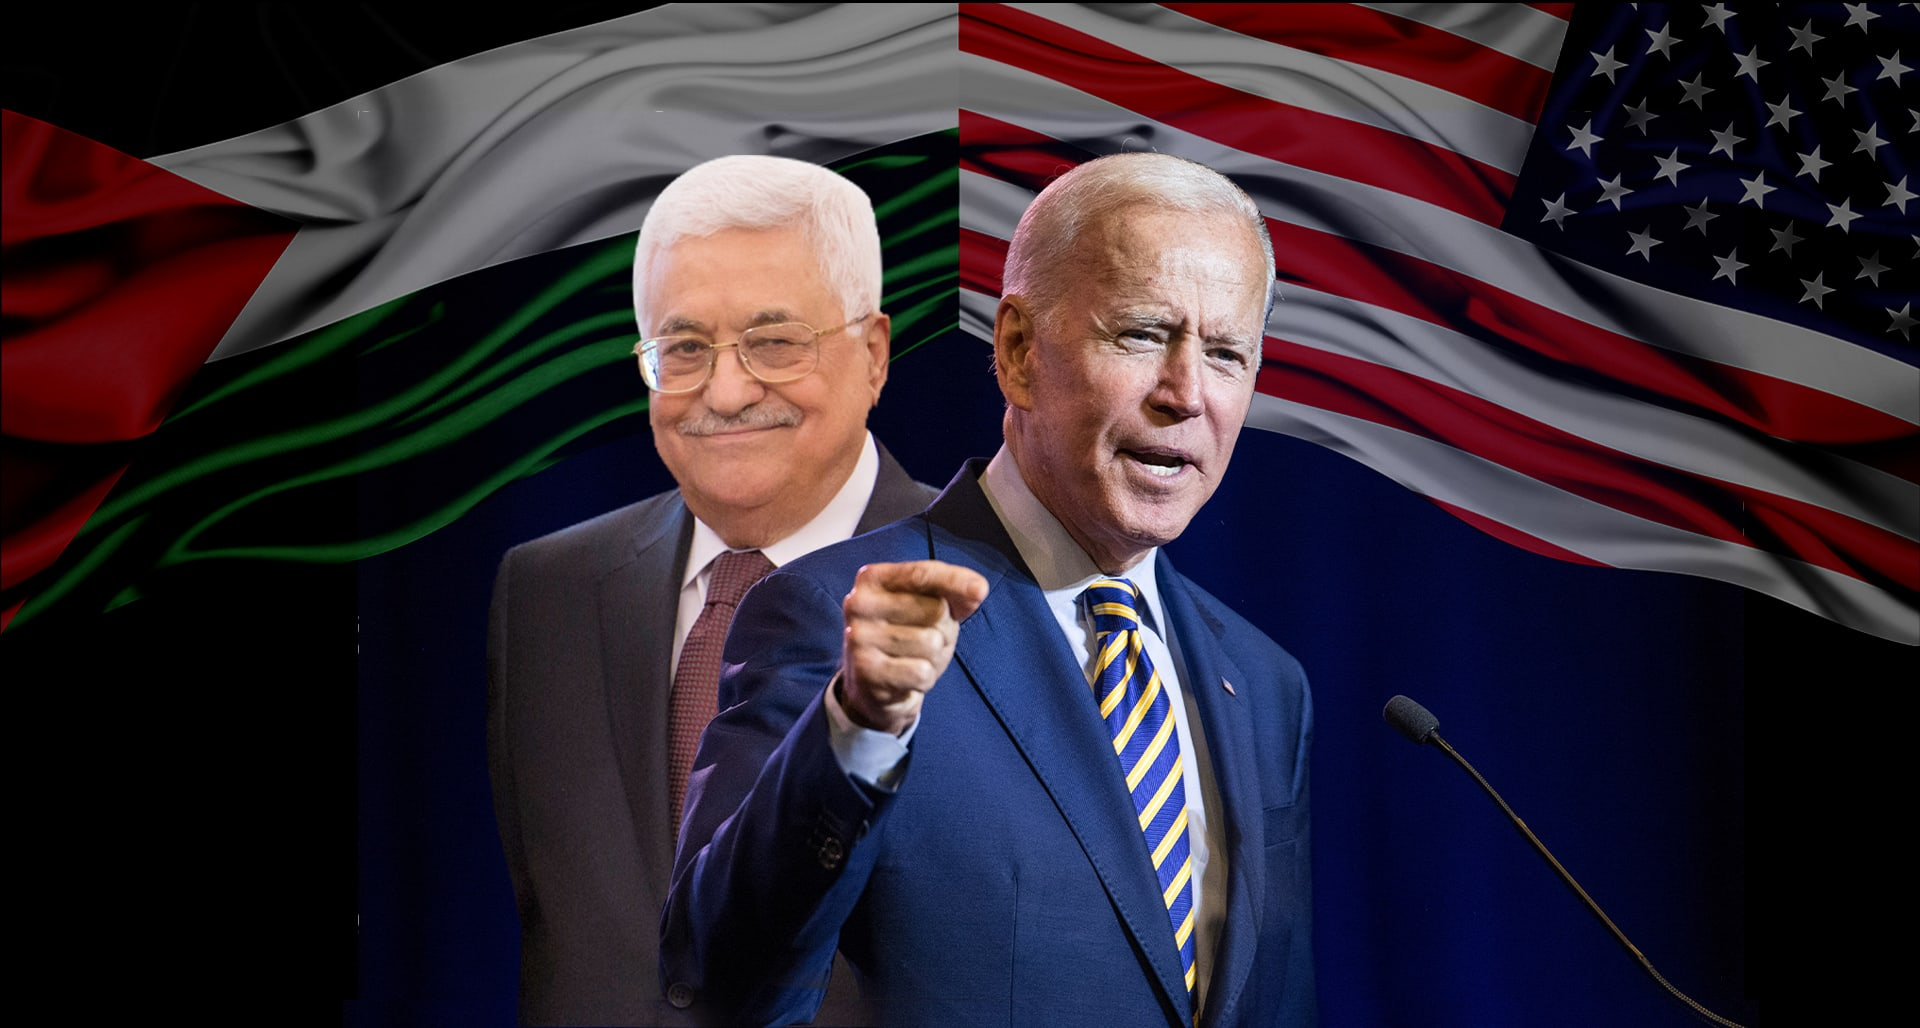 Does Biden Admin's Proposed Aid to Palestinians Violate US Law? | Honest Reporting